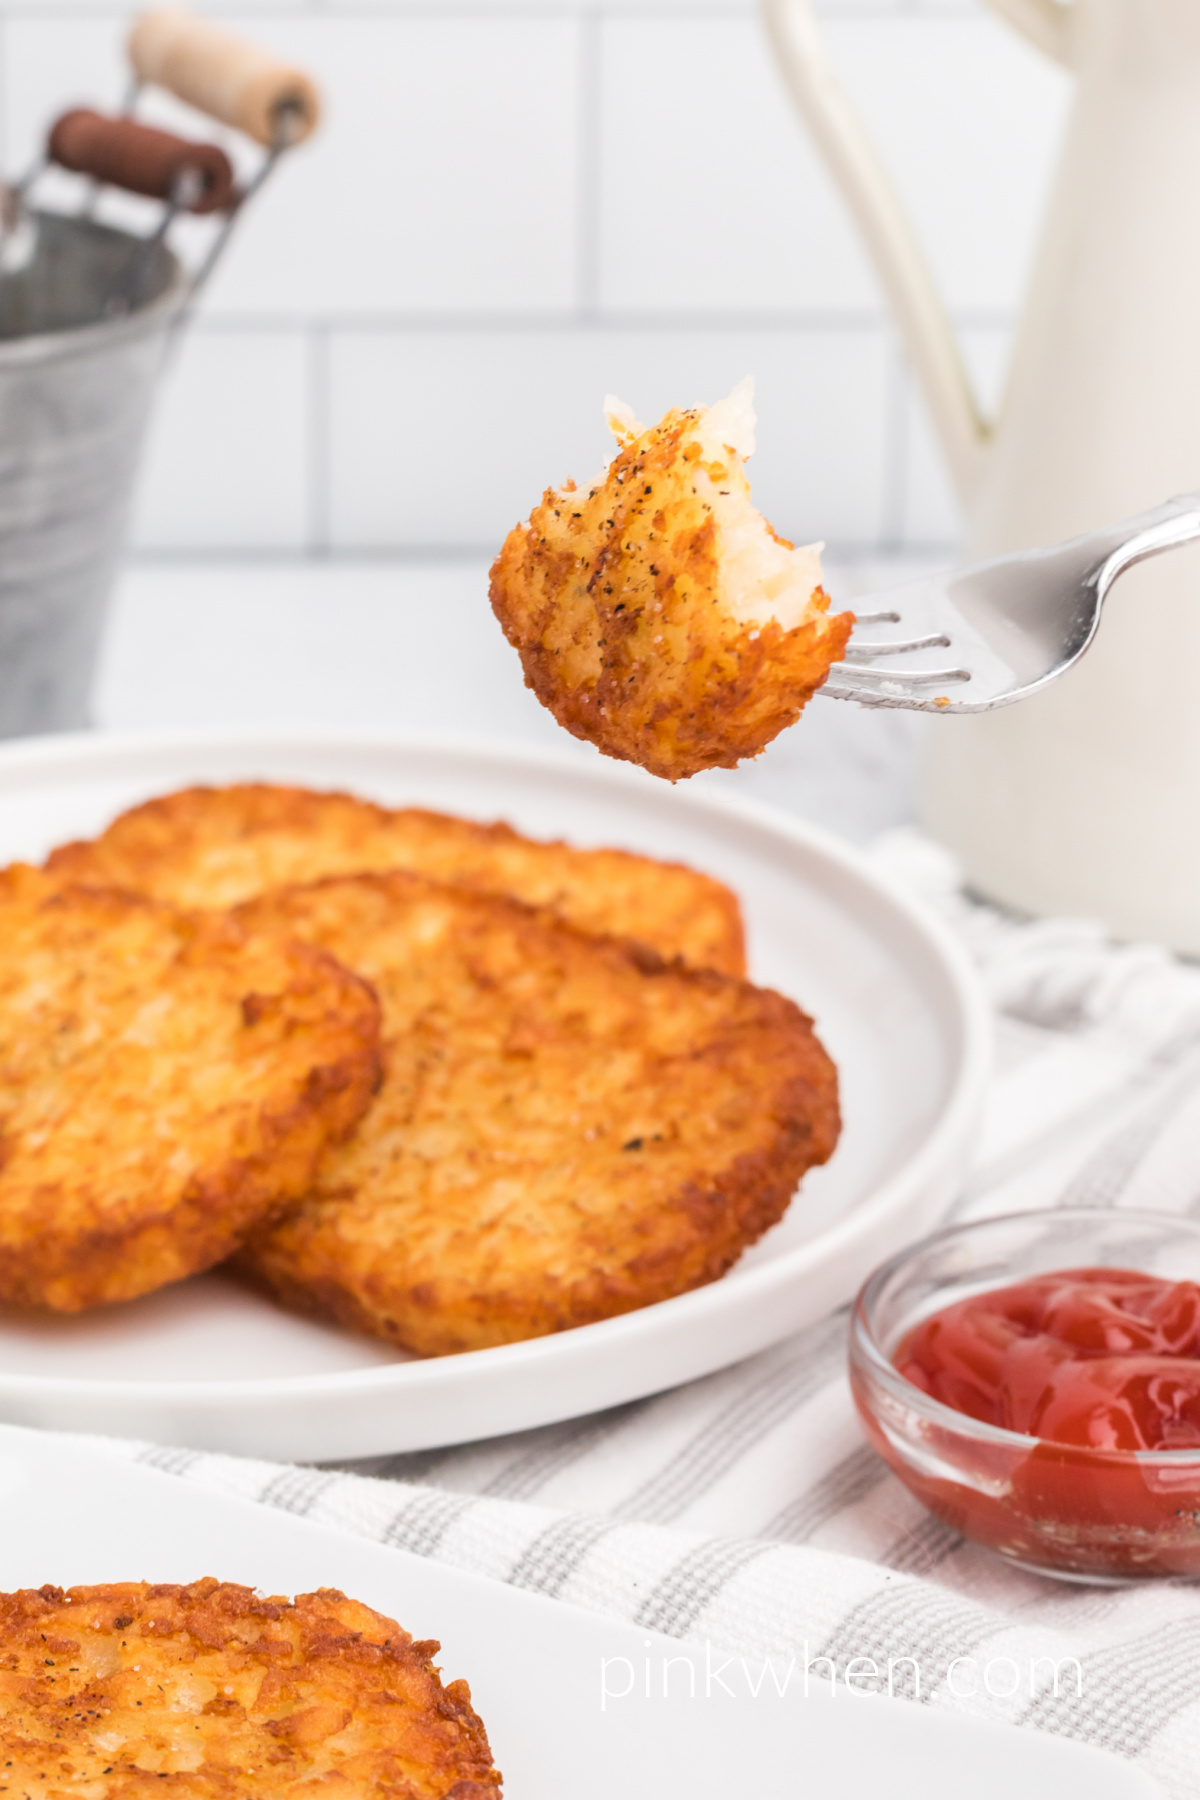 Frozen Hash Brown Patties that were made in the air fryer, with a bite of has brown on a fork.